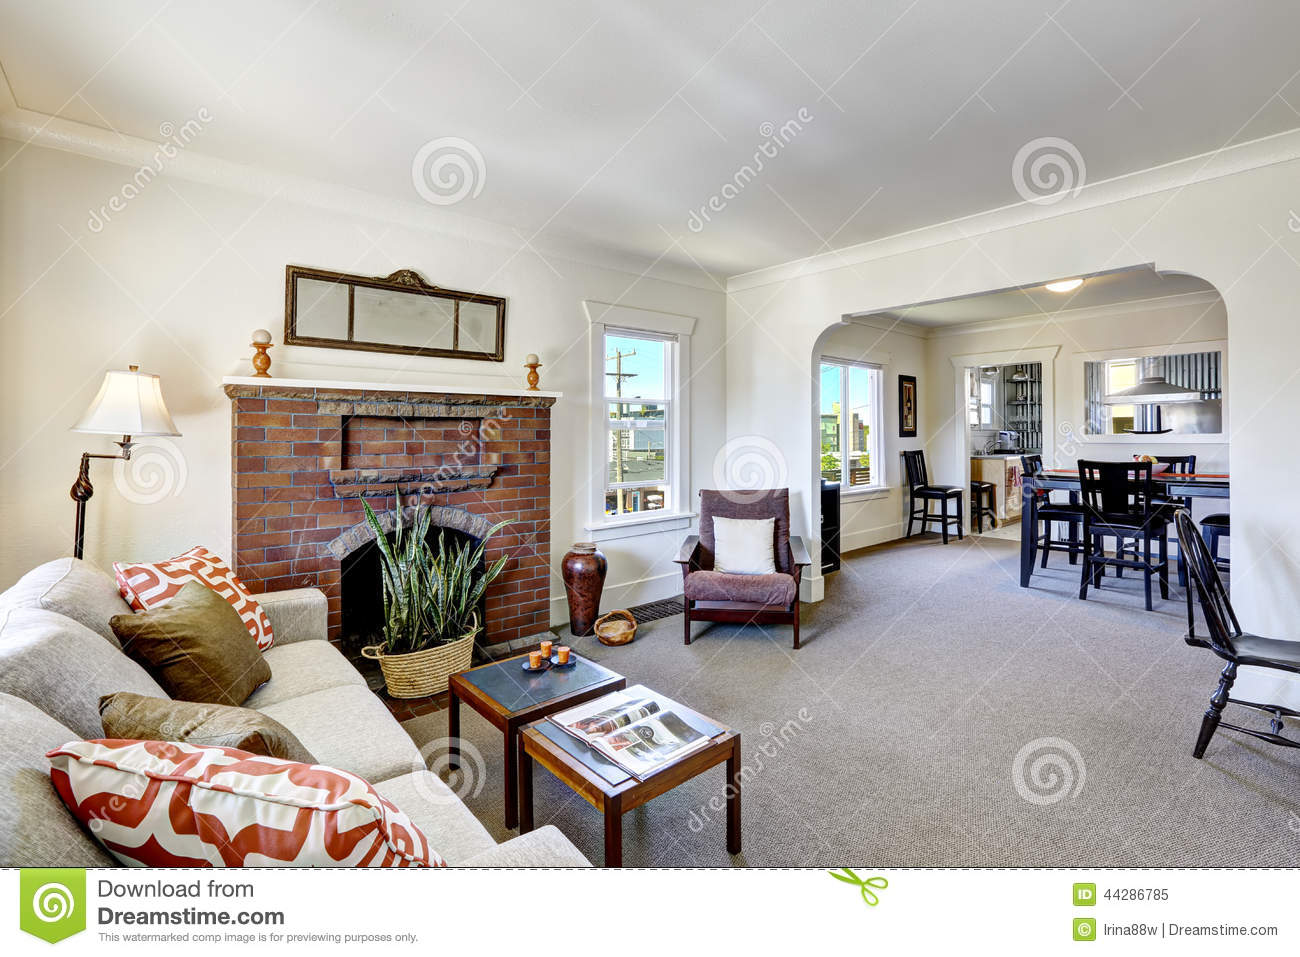 Simple Room With Brick Fireplace And Beige Carpet Floor Dining Black Table Set Old House Interior